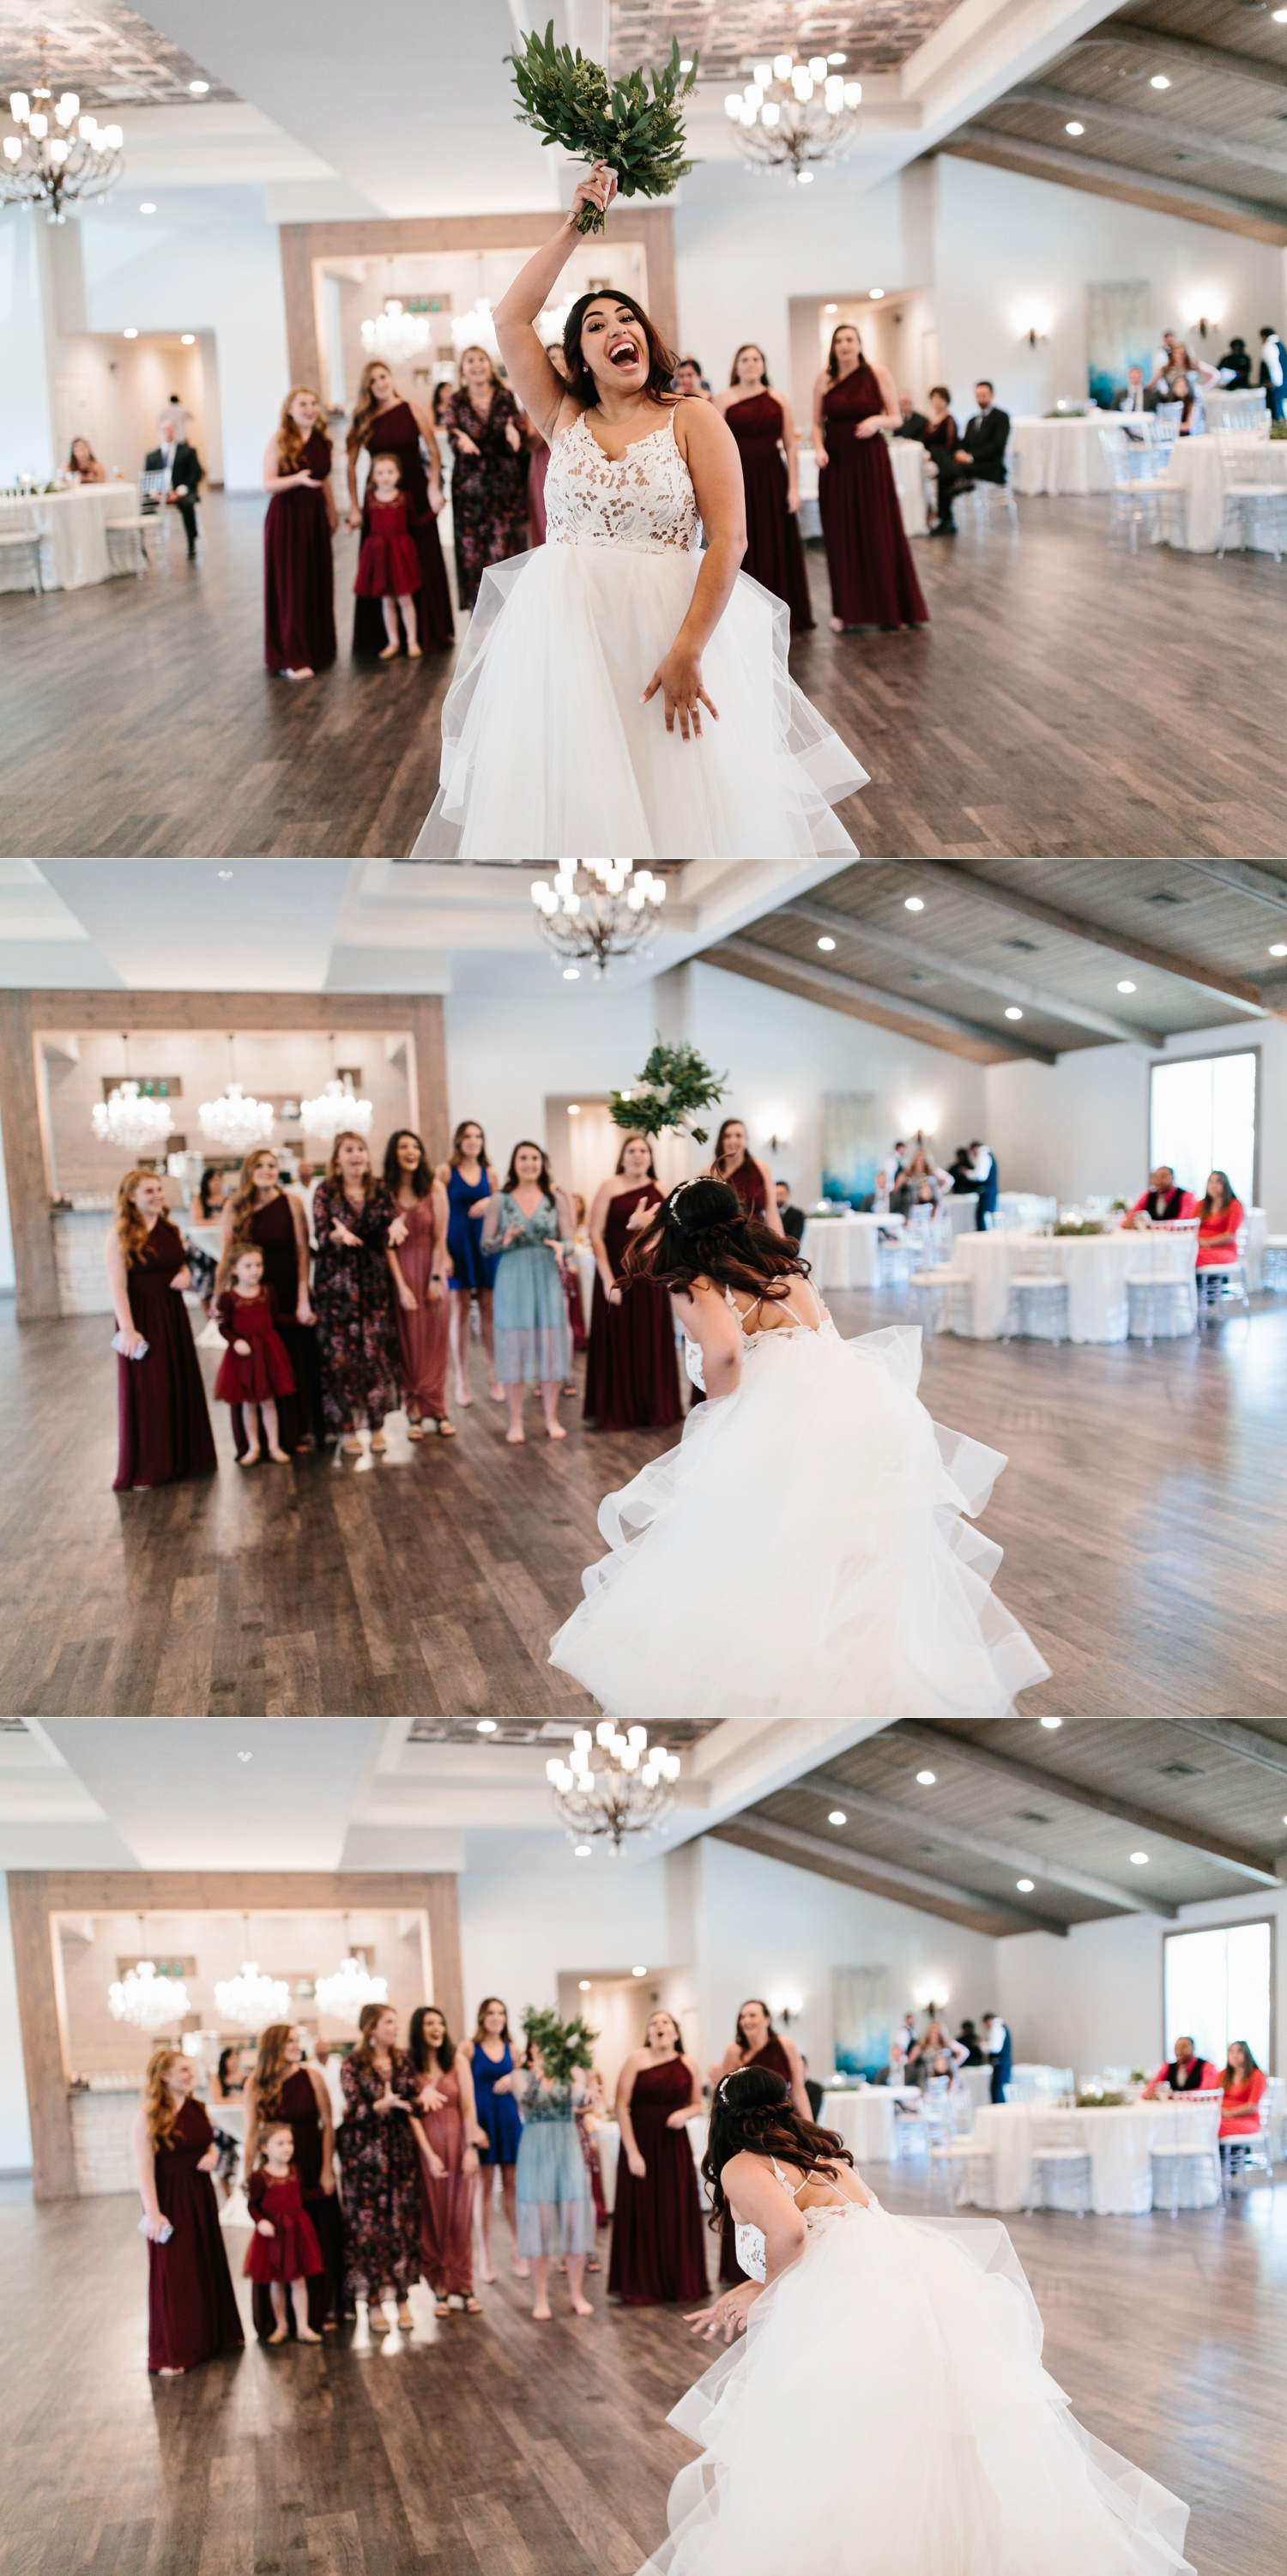 Grant + Lysette | a vibrant, deep burgundy and navy, and mixed metals wedding at Hidden Pines Chapel by North Texas Wedding Photographer Rachel Meagan Photography 176